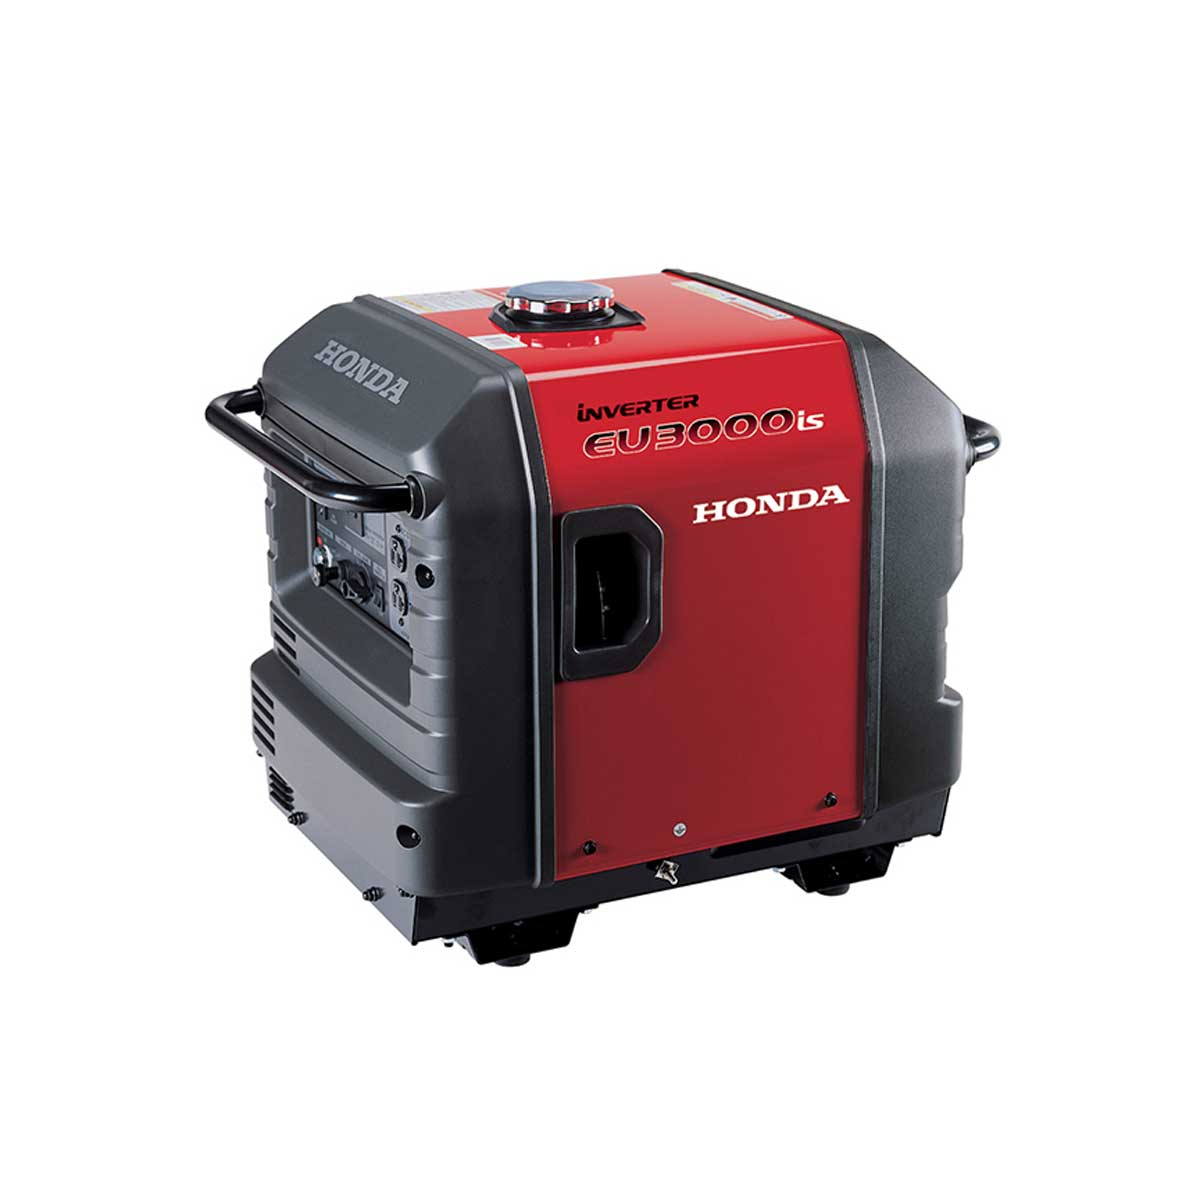 Honda Generator EU3000iS